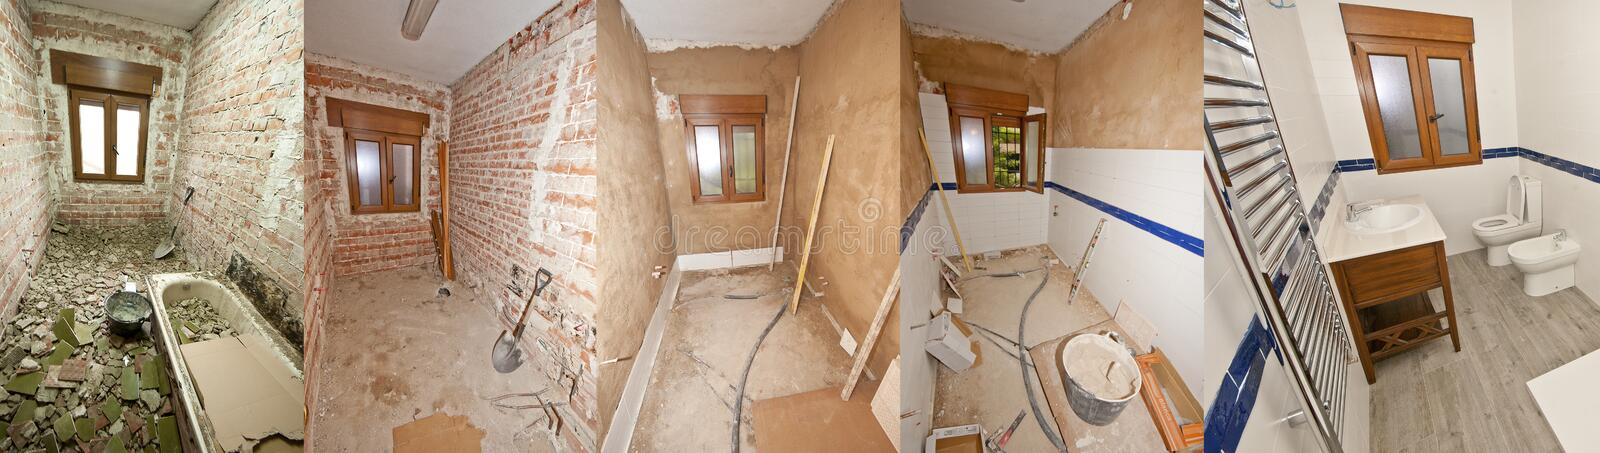 Building a bathroom before and after royalty free stock photos